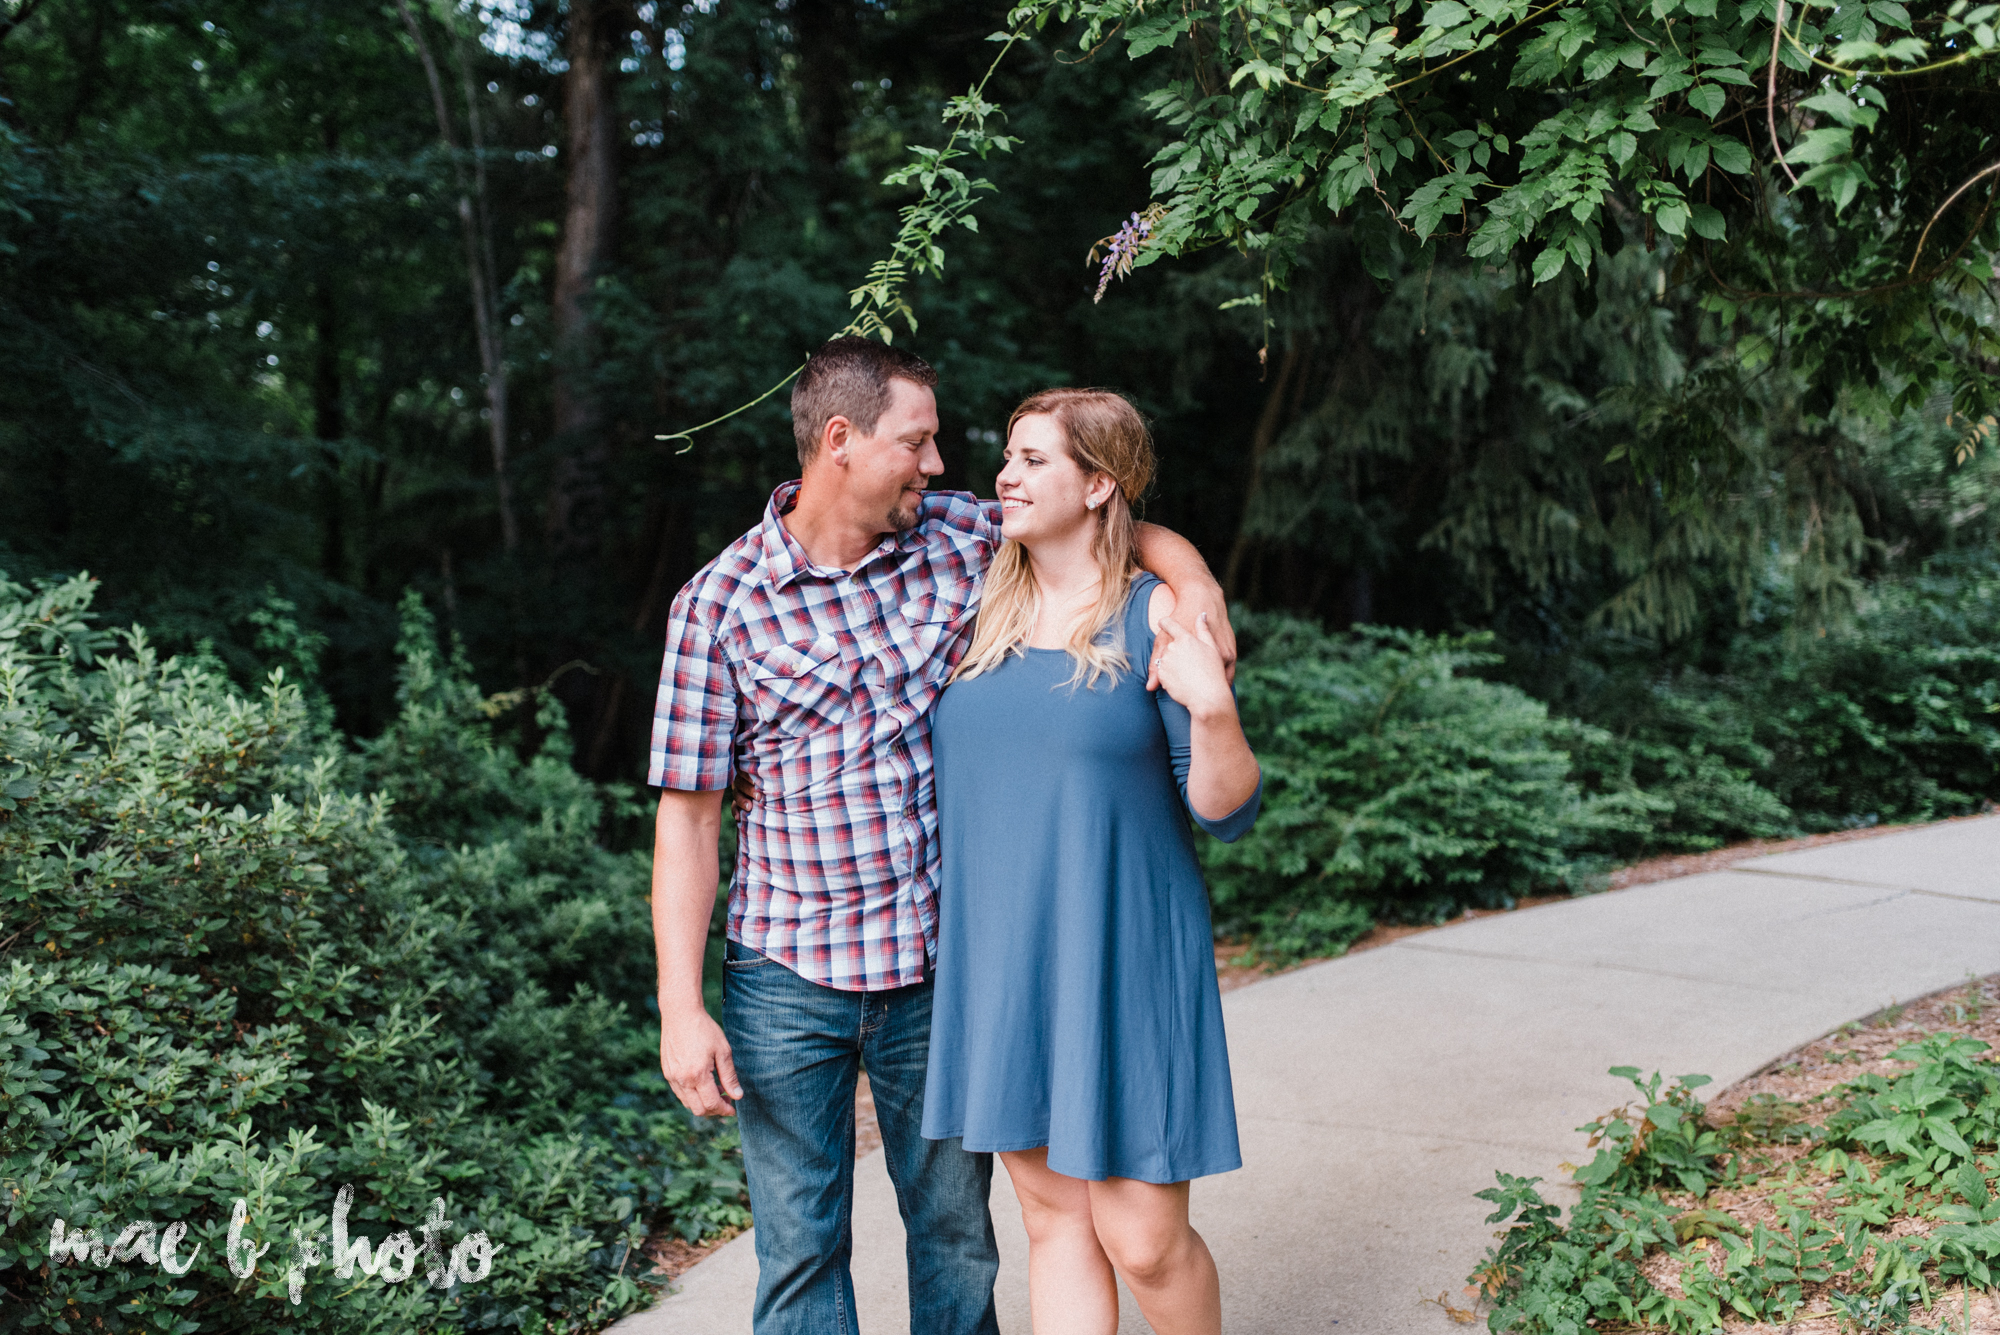 becca and rich's woodsy summer engagement session at ford nature center in mill creek park in youngstown ohio photographed by cleveland wedding photographer mae b photo-26.jpg